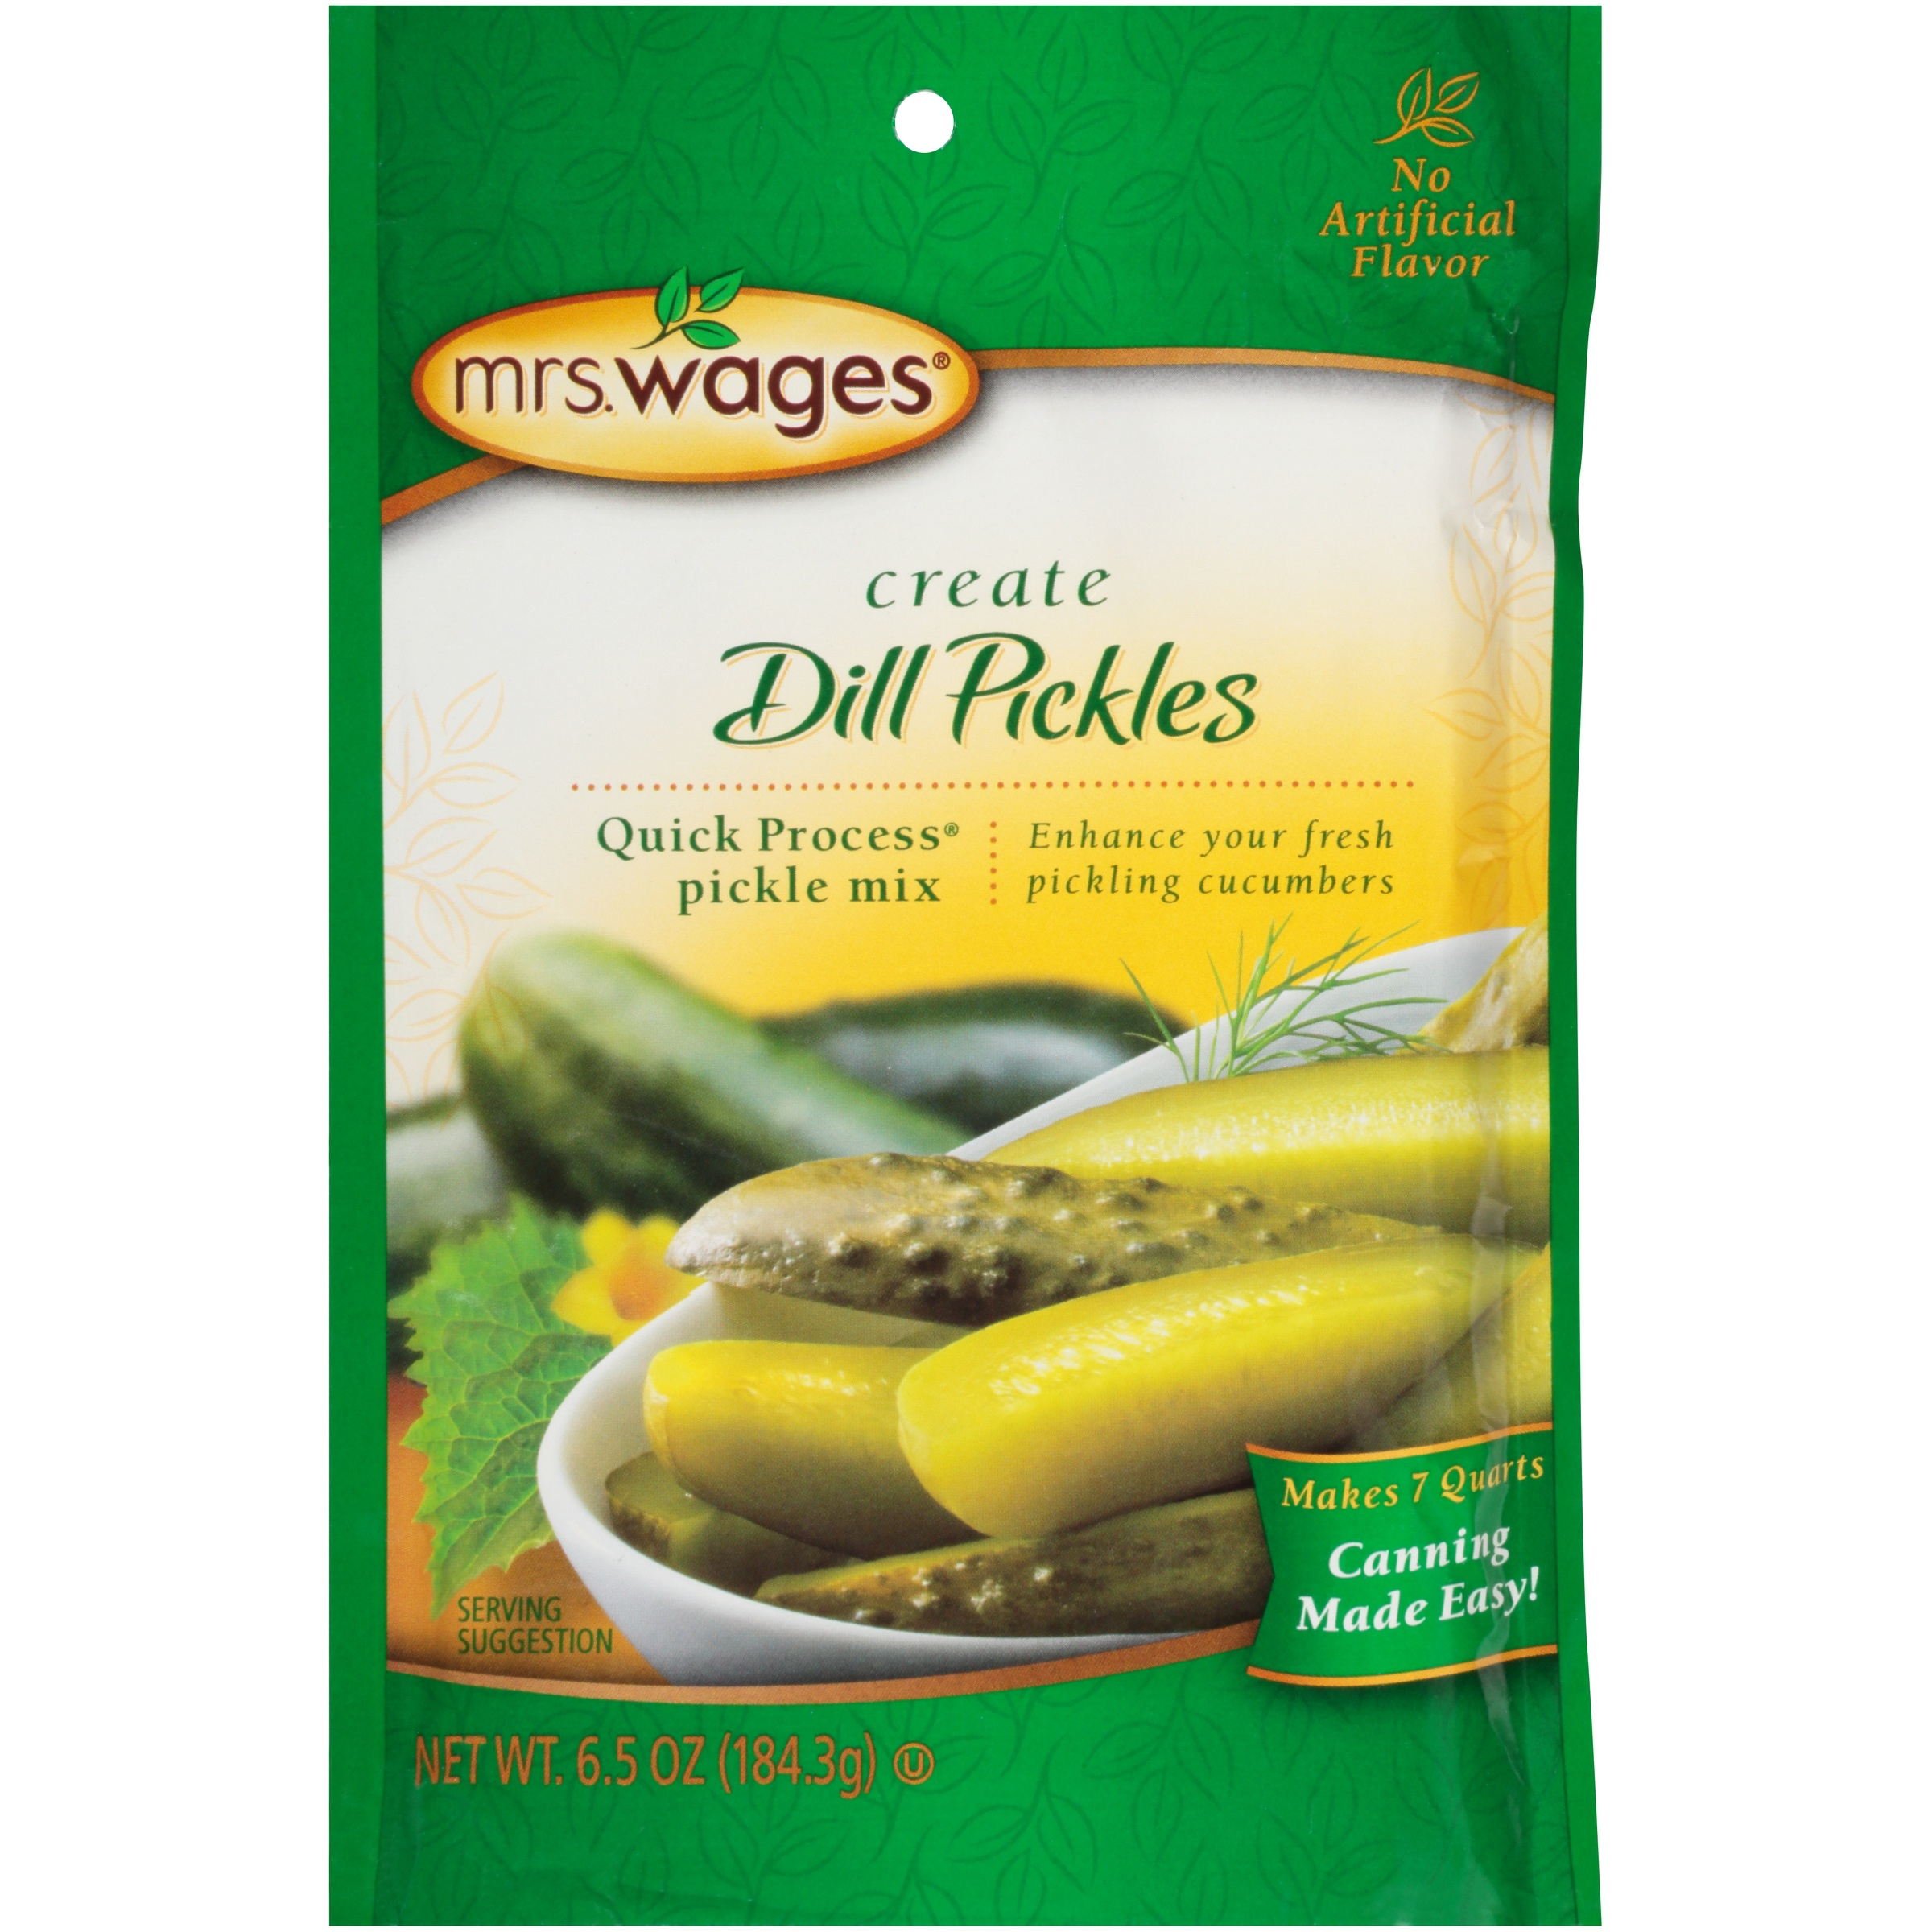 (3 Pack) KENT PRECISION FOODS GROUP INC W621-J7425 6.5OZ Dill Pickle Mix